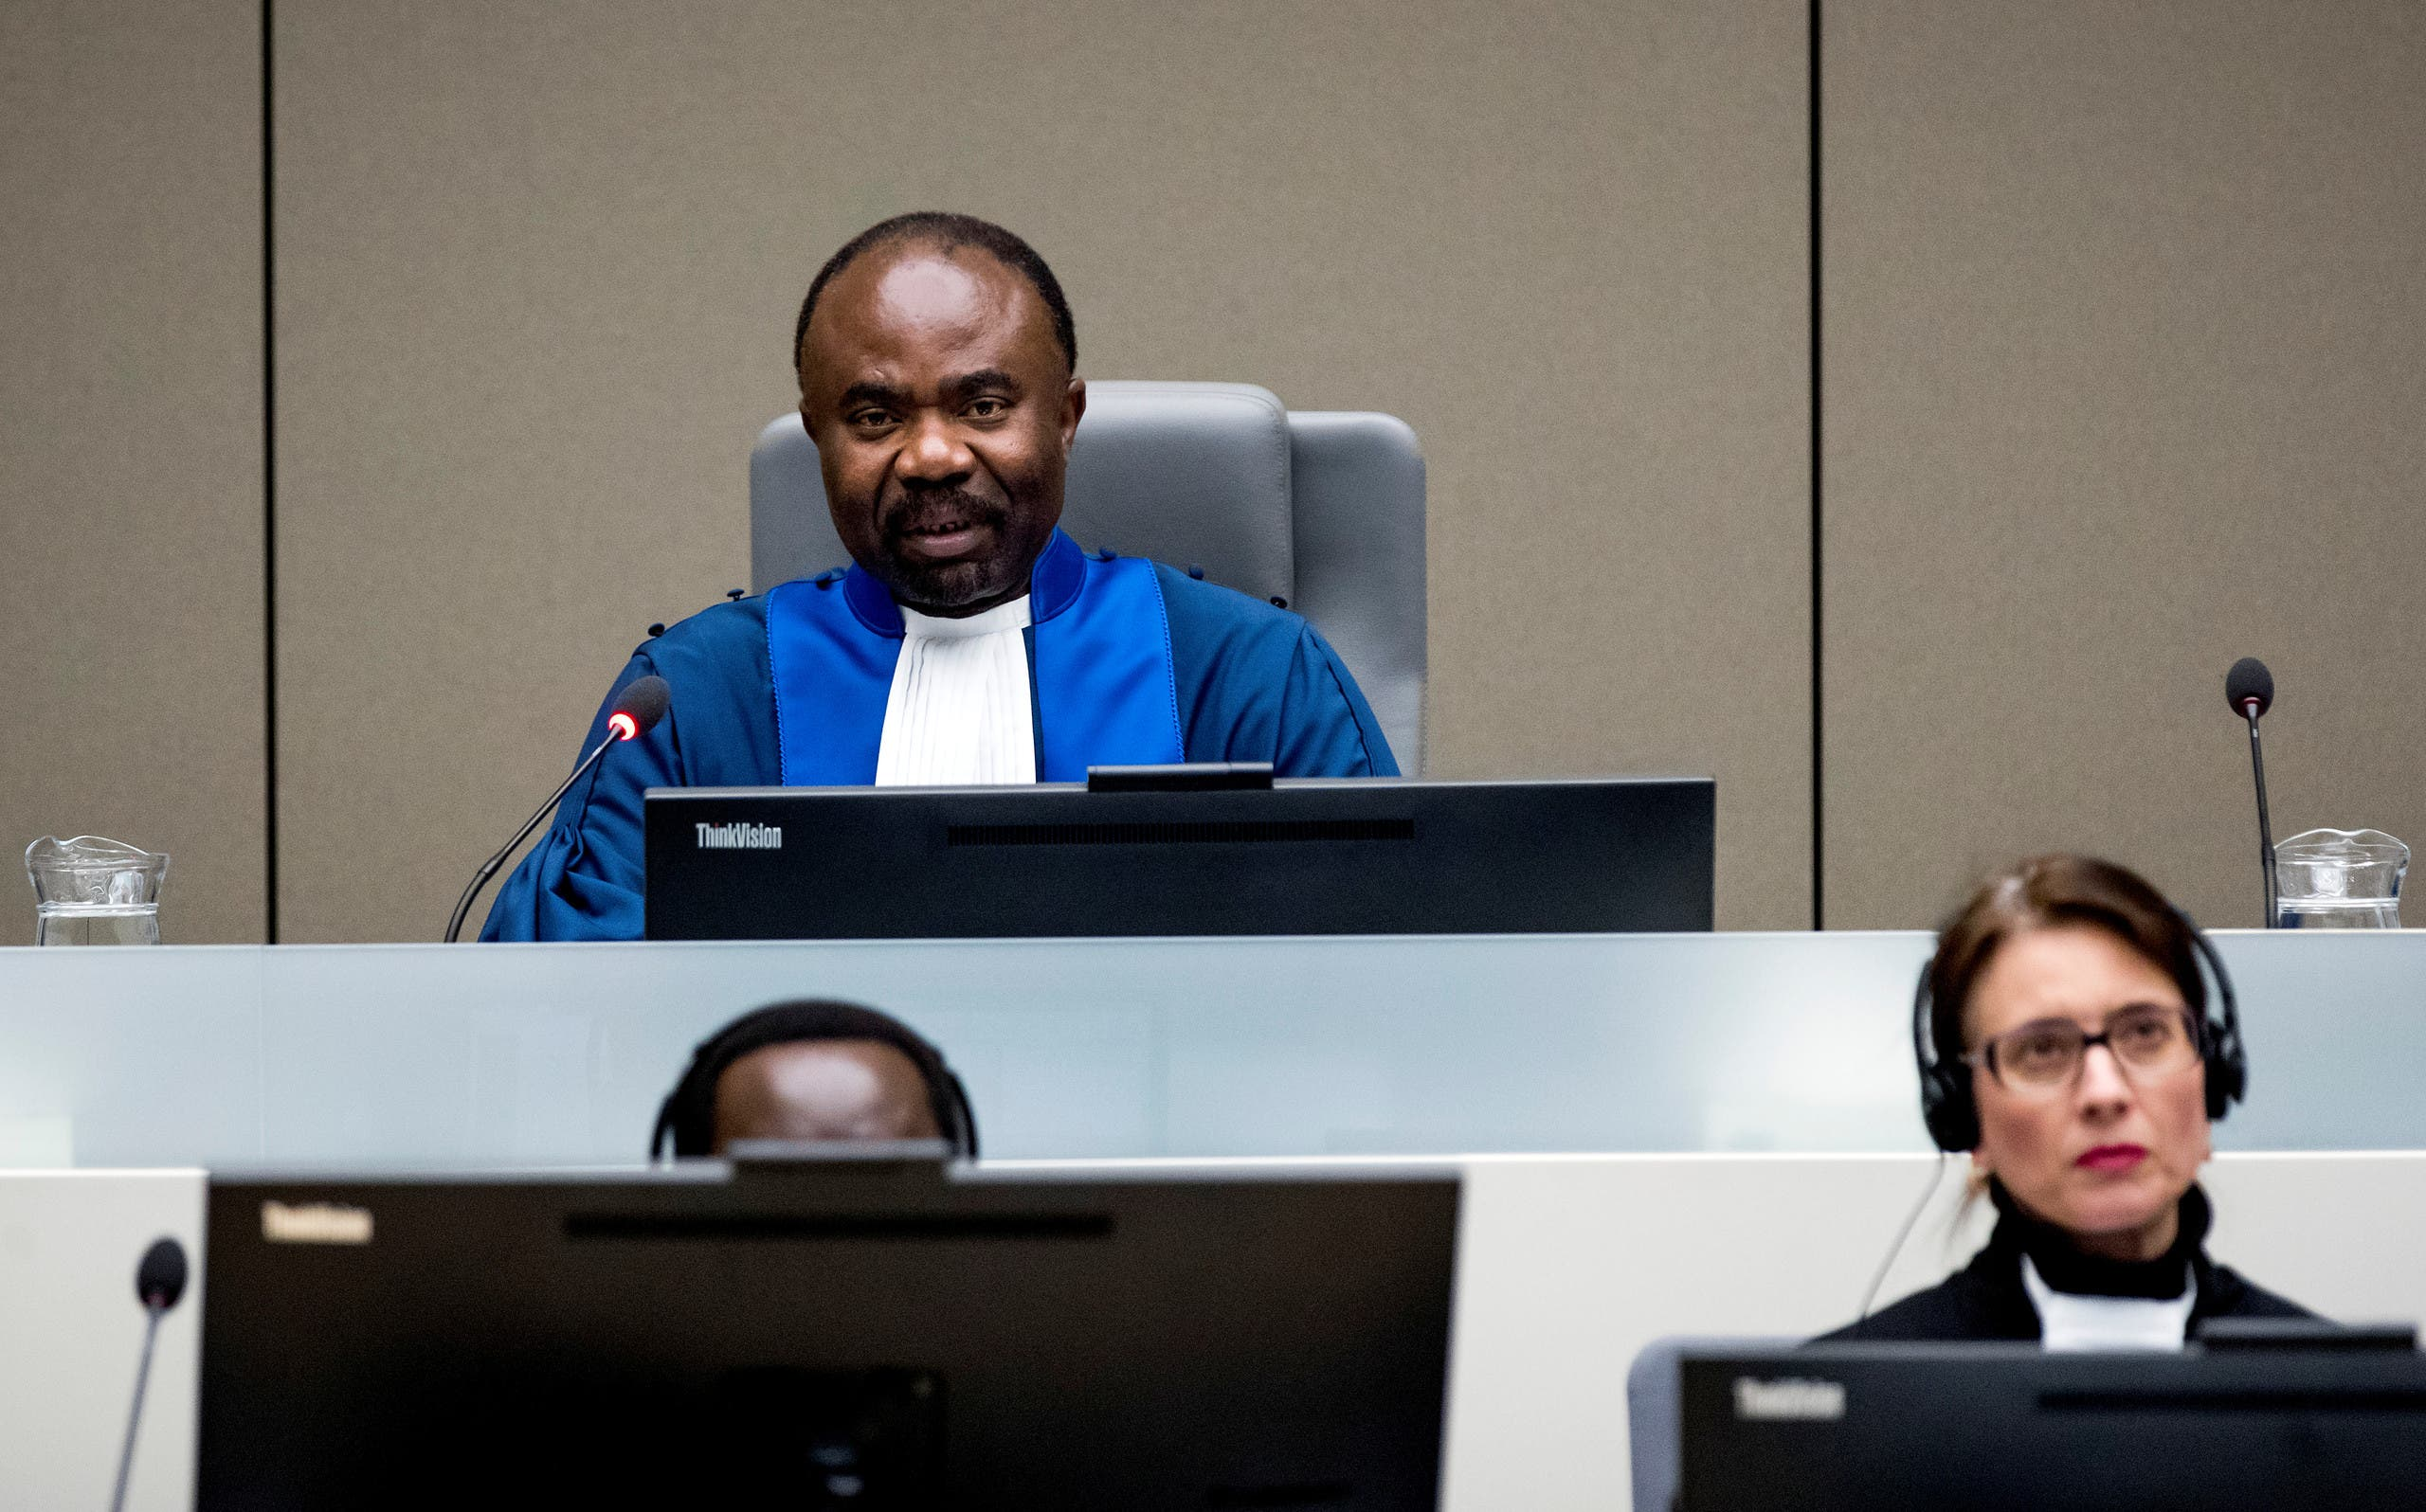 Judge Antoine Kesia-Mbe Mindua is seen while Central African Republic's soccer executive and alleged militia leader, Patrice-Edouard Ngaissona appears before the International Criminal Court (ICC) in The Hague, Netherlands, January 25, 2019. (Reuters)